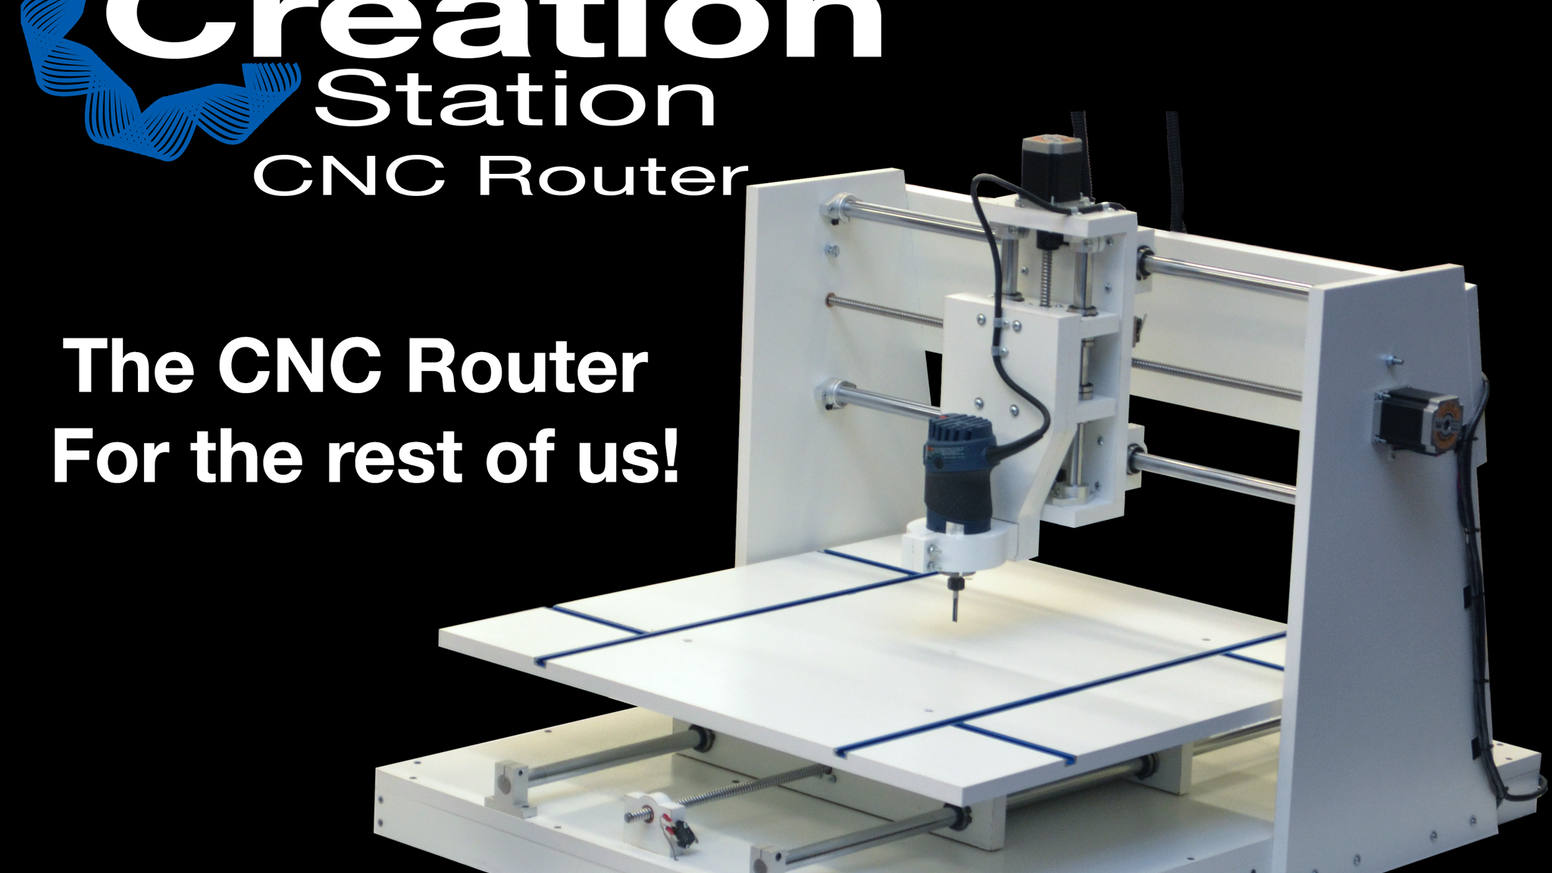 Station Eleven Quotes With Page Numbers: The Creation Station Open Source CNC Router By Innovation